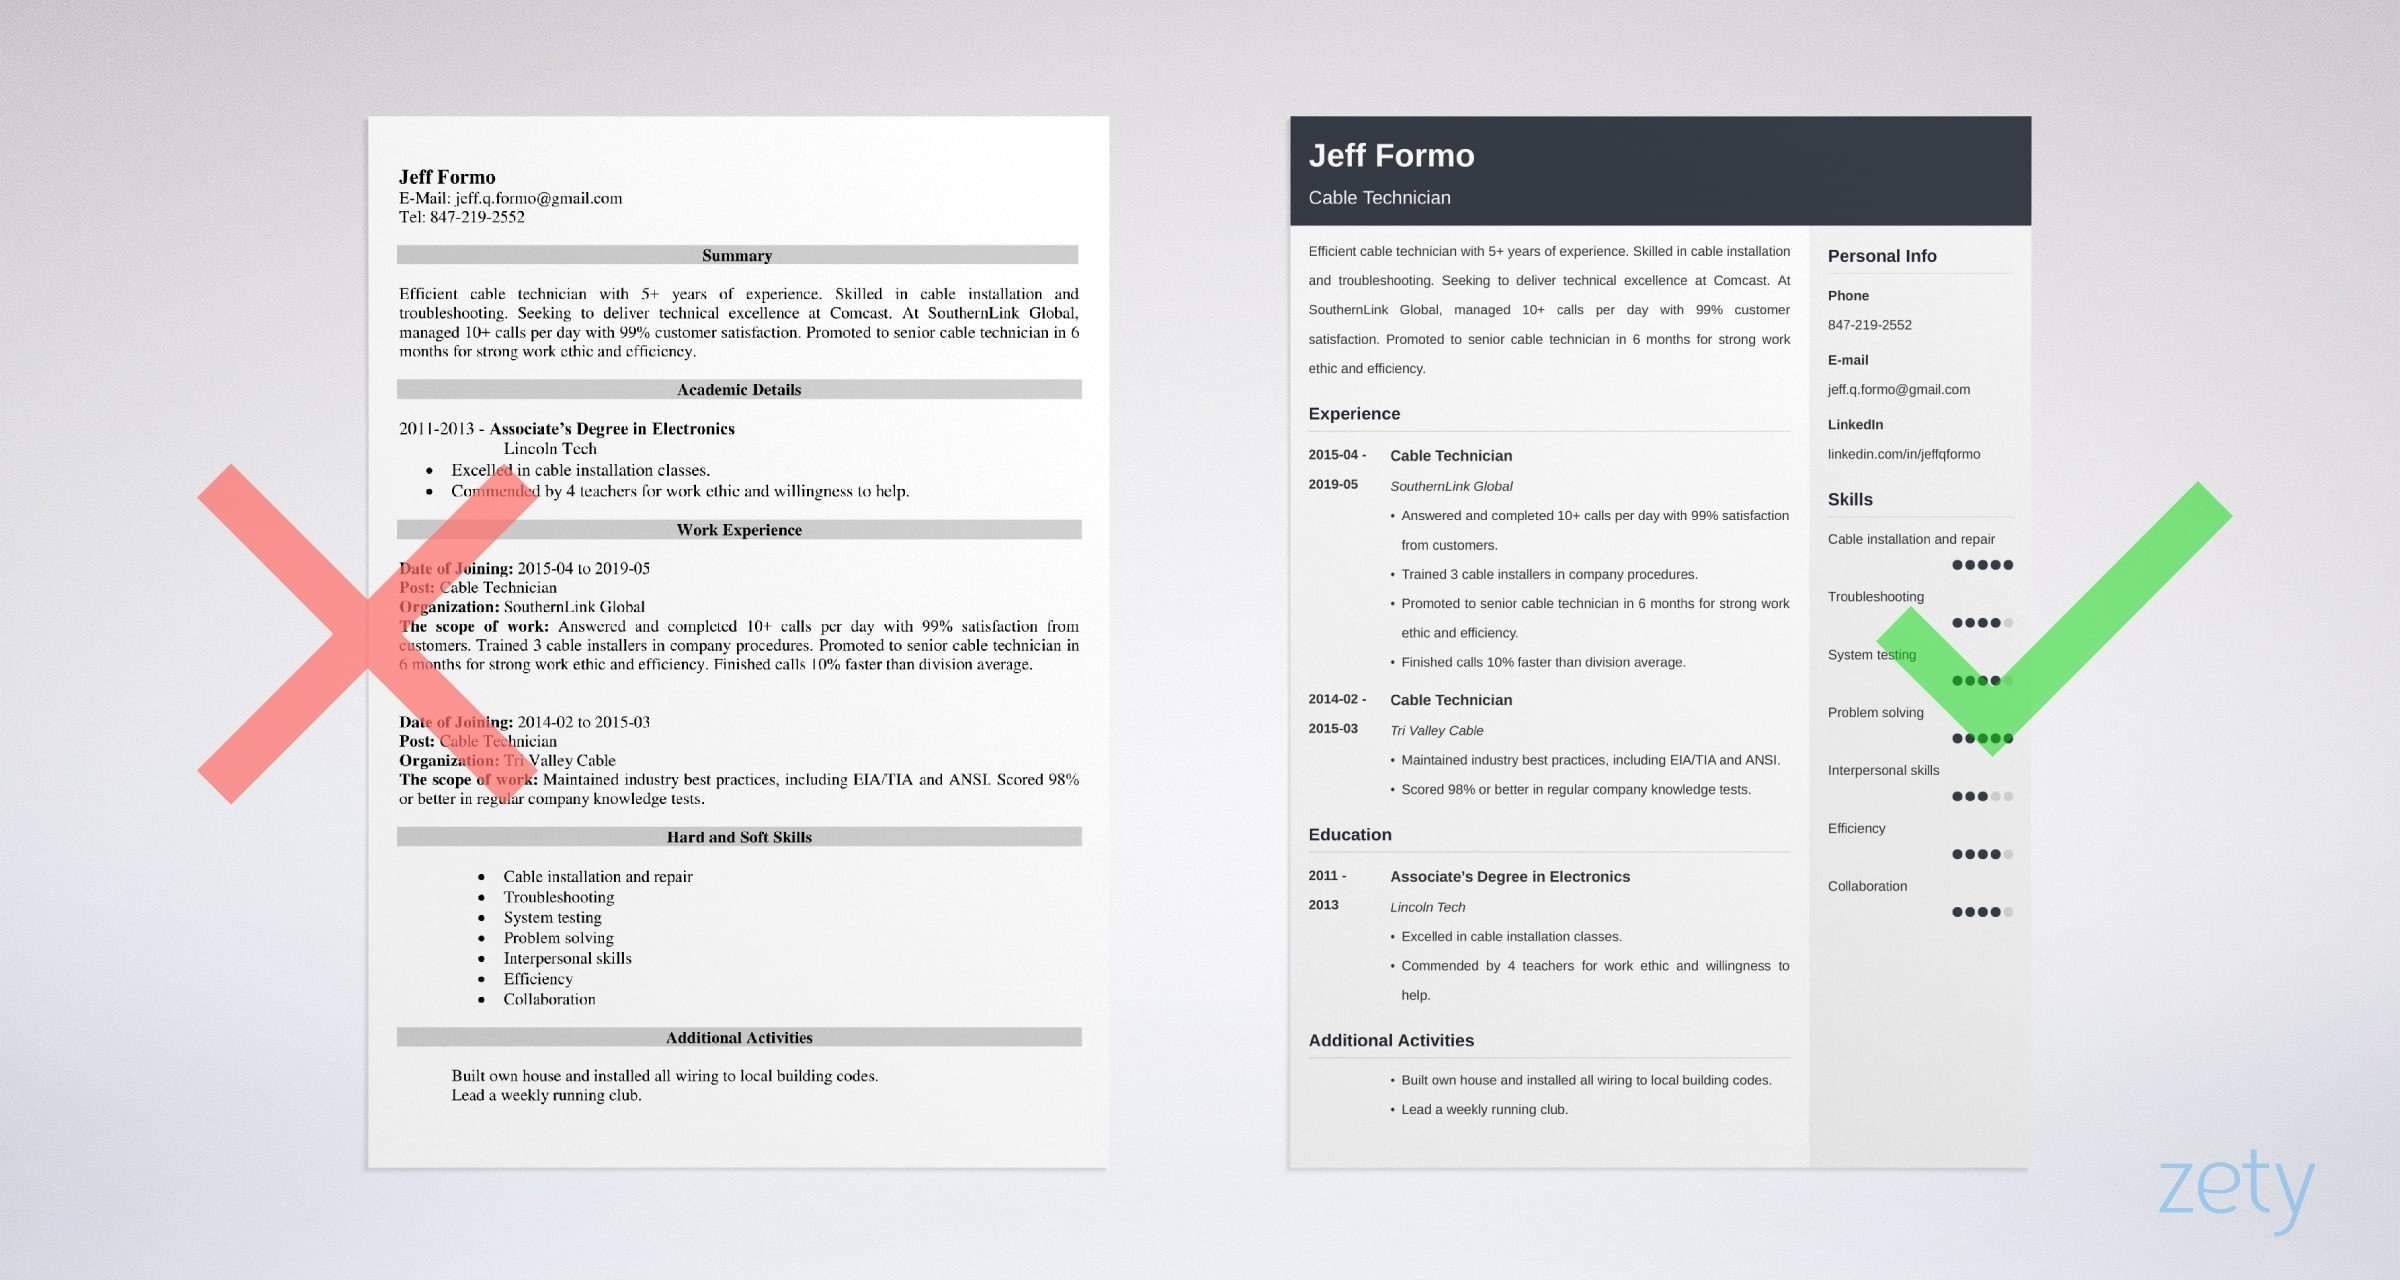 Cable Technician Resume: Sample and Full Writing Guide [20+ ...